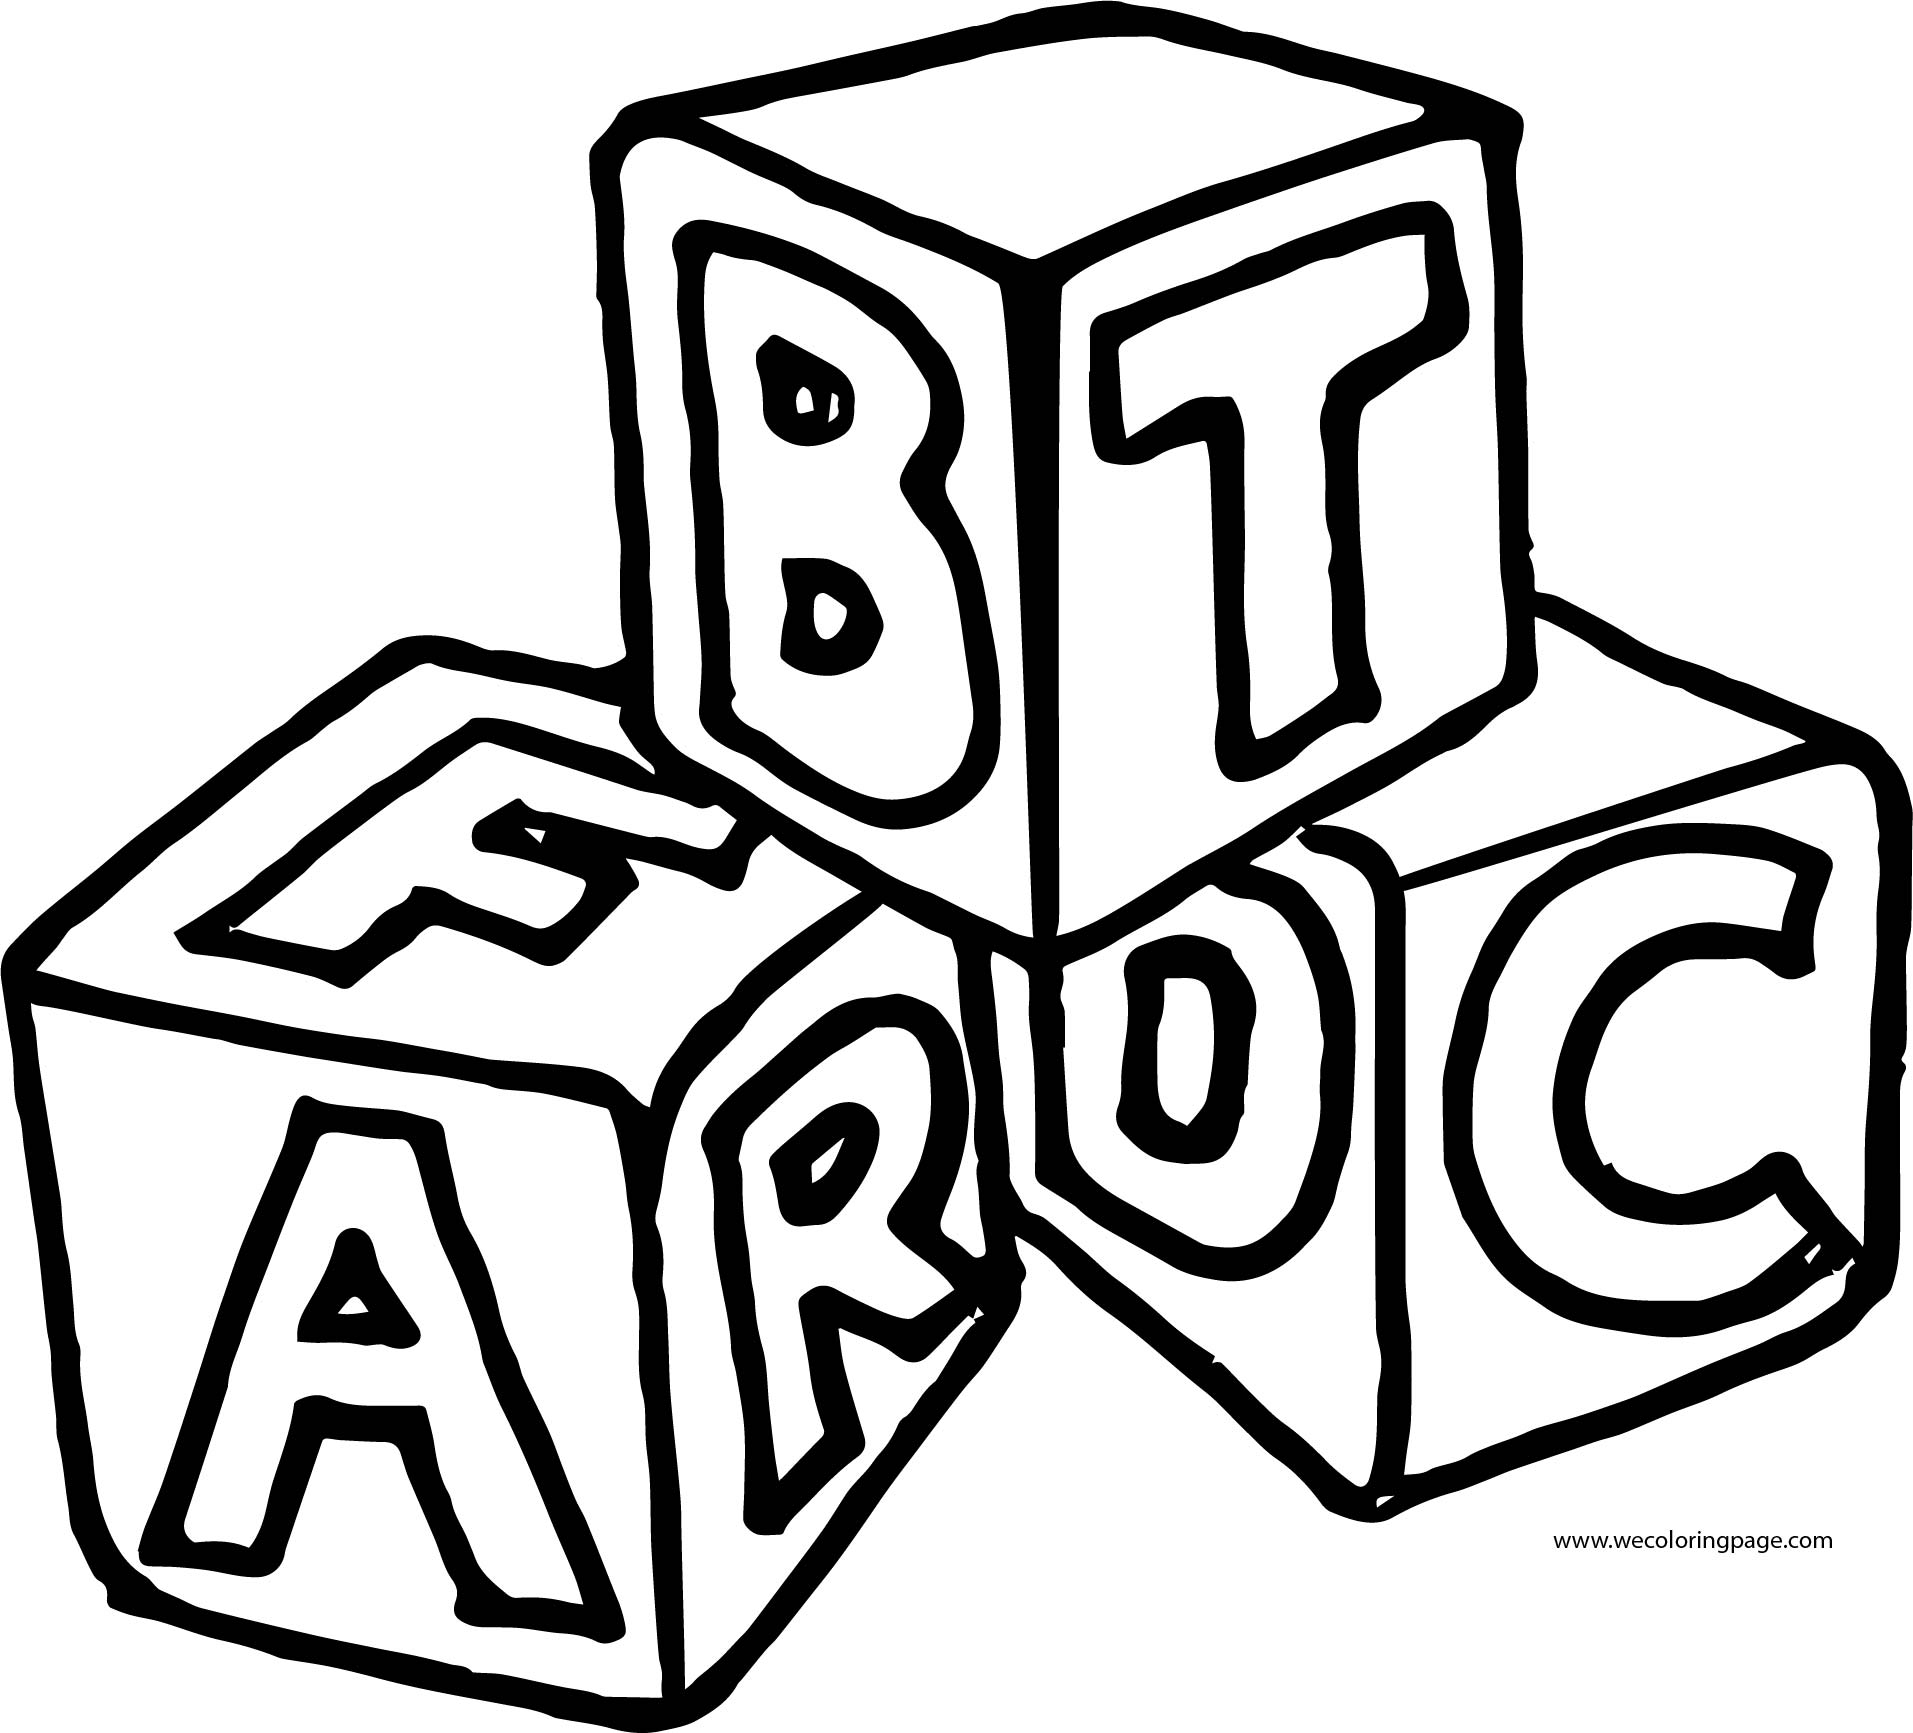 English Teacher Cube Coloring Page